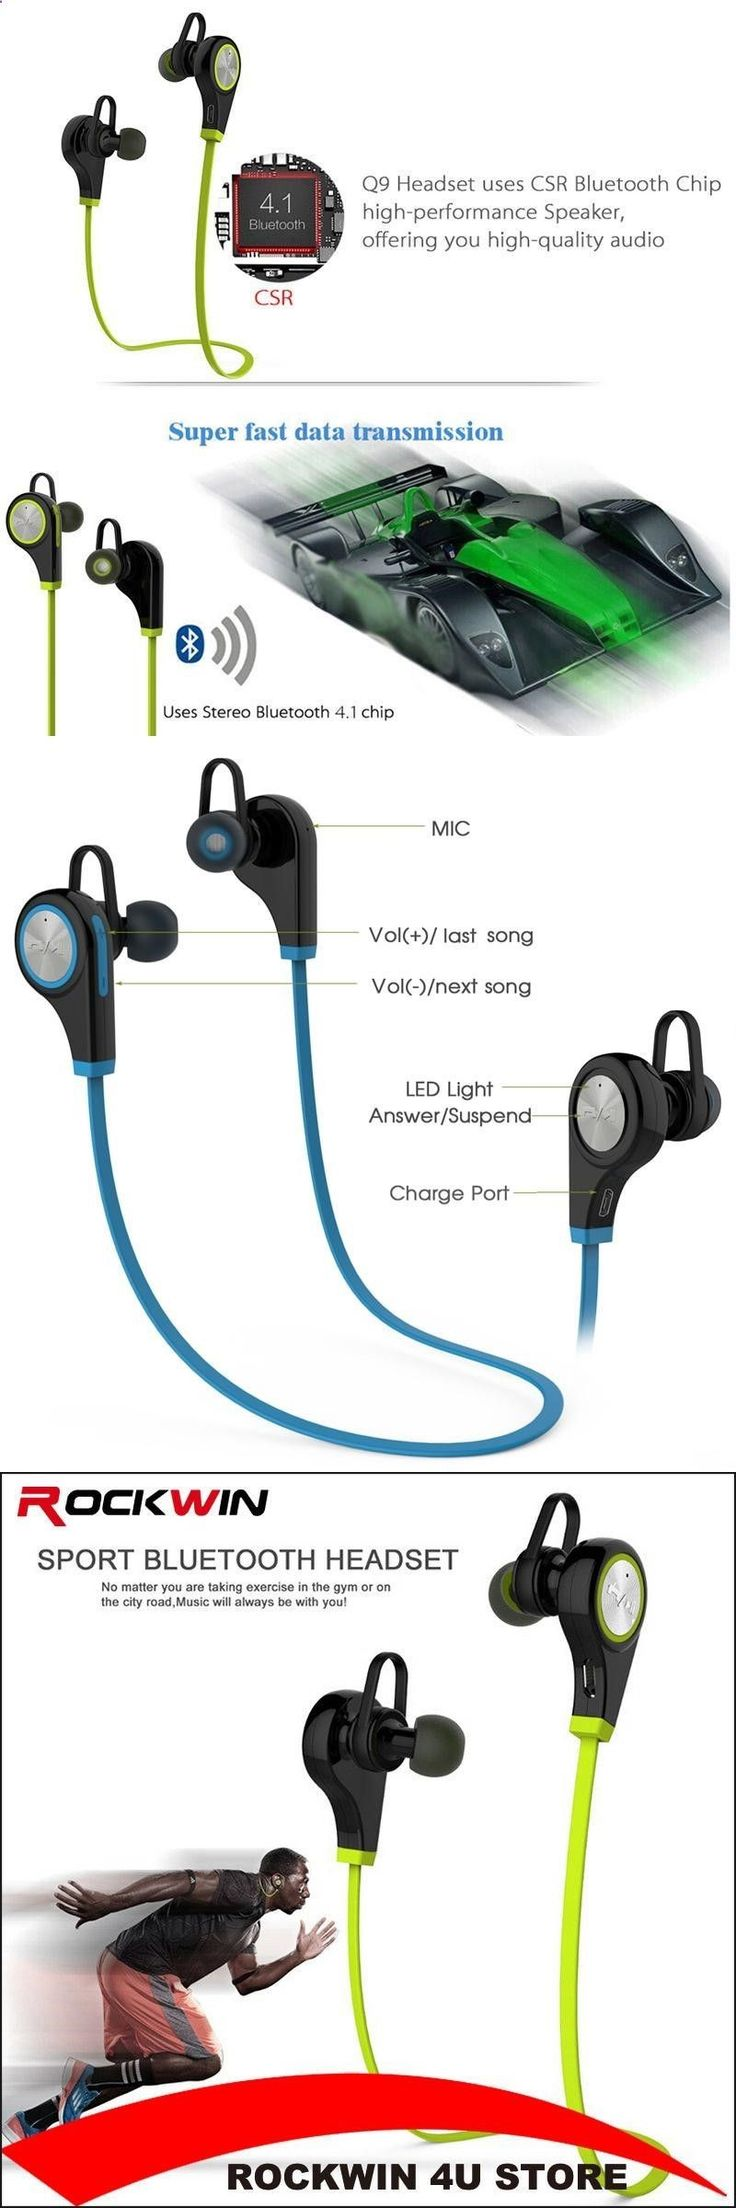 Sports Headphones - Sports Headphones - Bluetooth Earphone Wireless Sports Headphones In ear Headset Running Music Stereo Earbuds Handsfree with Mic for Smartphones - If you usually go out to run, walk or any other sport in which you usually carry music to accompany or motivate you, we have selected 13 models of sports headphones that we consider among the best in the market for different aspects, from comfort to use to design, sound quality or value for money, so that you find variety...